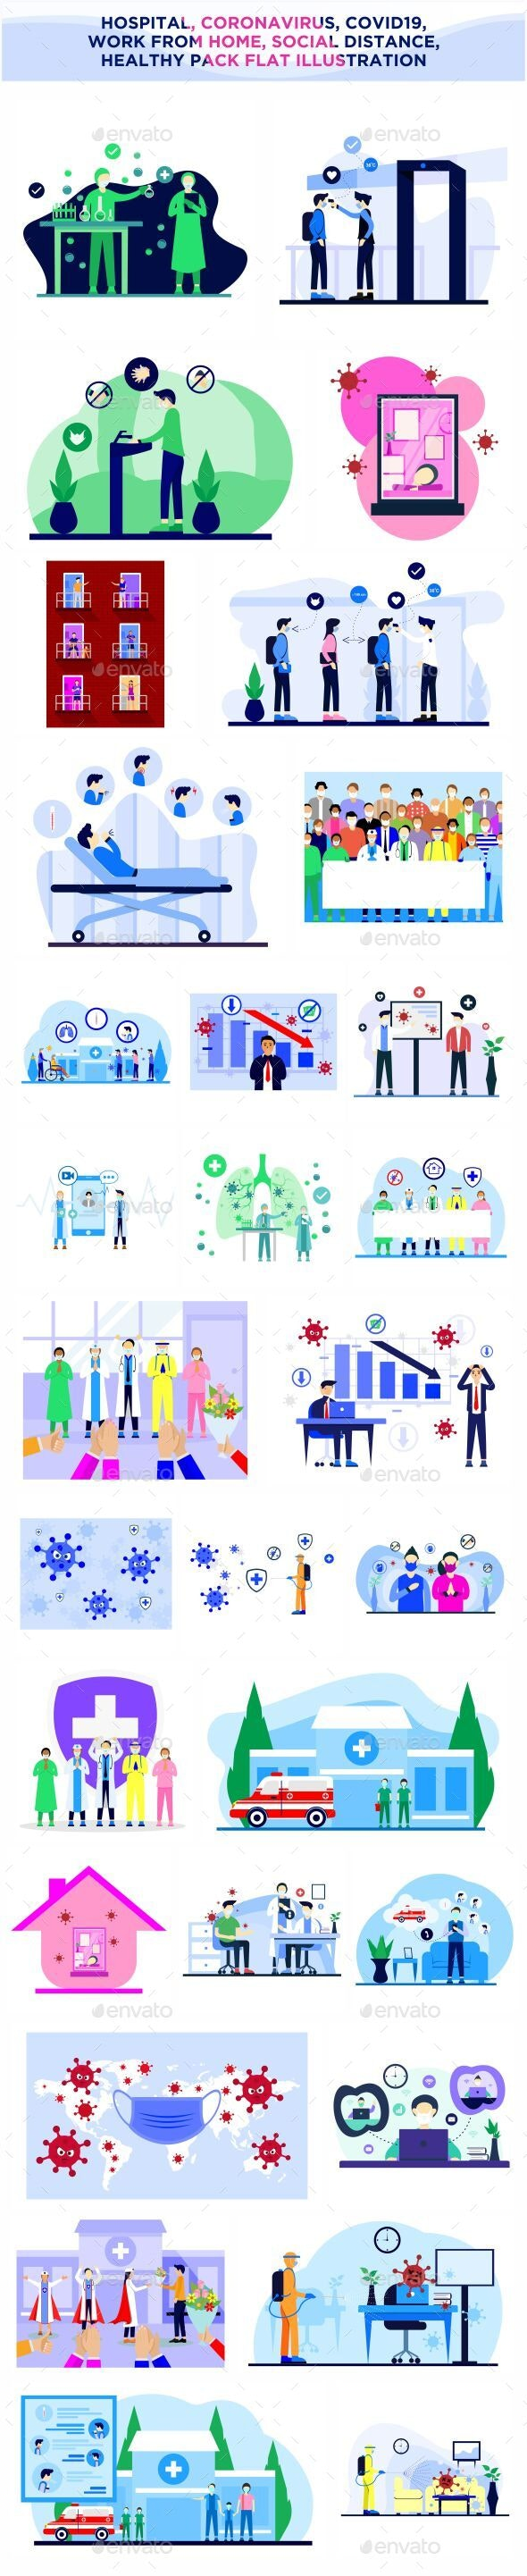 Pack Flat Designs about Coronavirus and Covid-19 - Illustrations Graphics